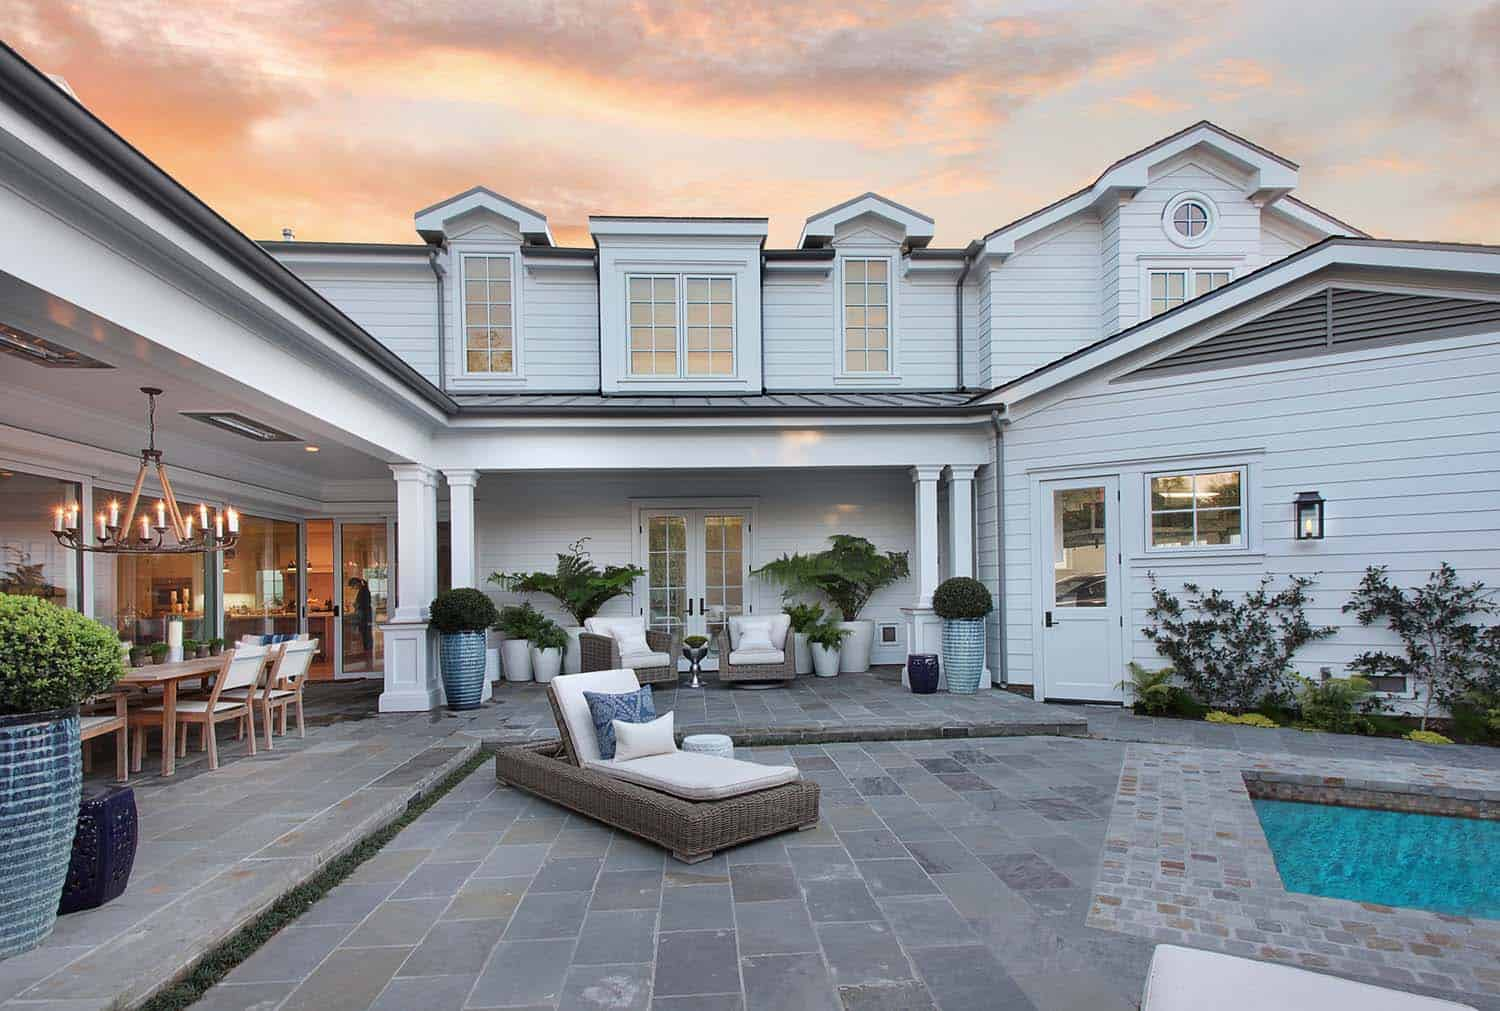 traditional-style-home-patterson-custom-homes-23-1-kindesign